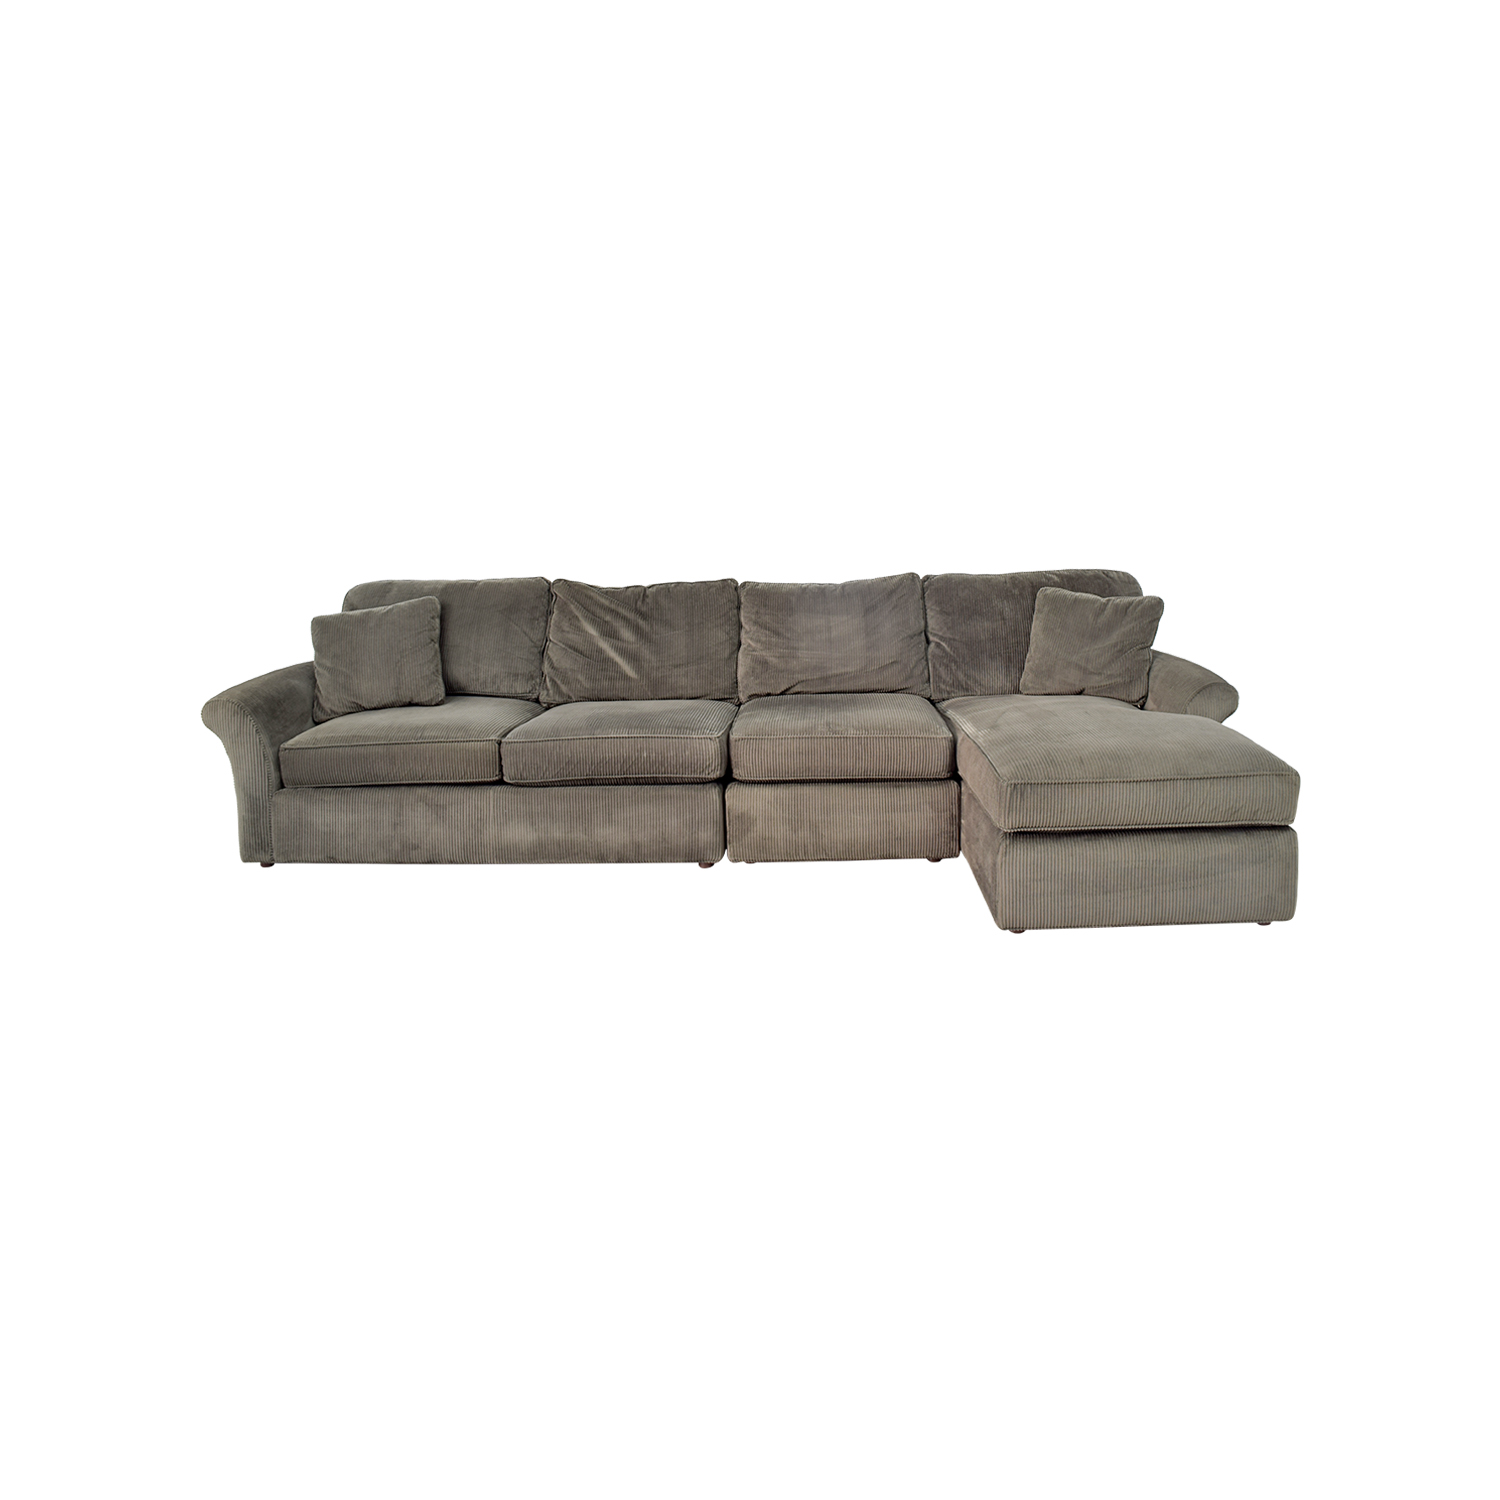 Prime 74 Off Macys Macys Modern Concepts Charcoal Gray Corduroy Chaise Sectional Sofas Creativecarmelina Interior Chair Design Creativecarmelinacom